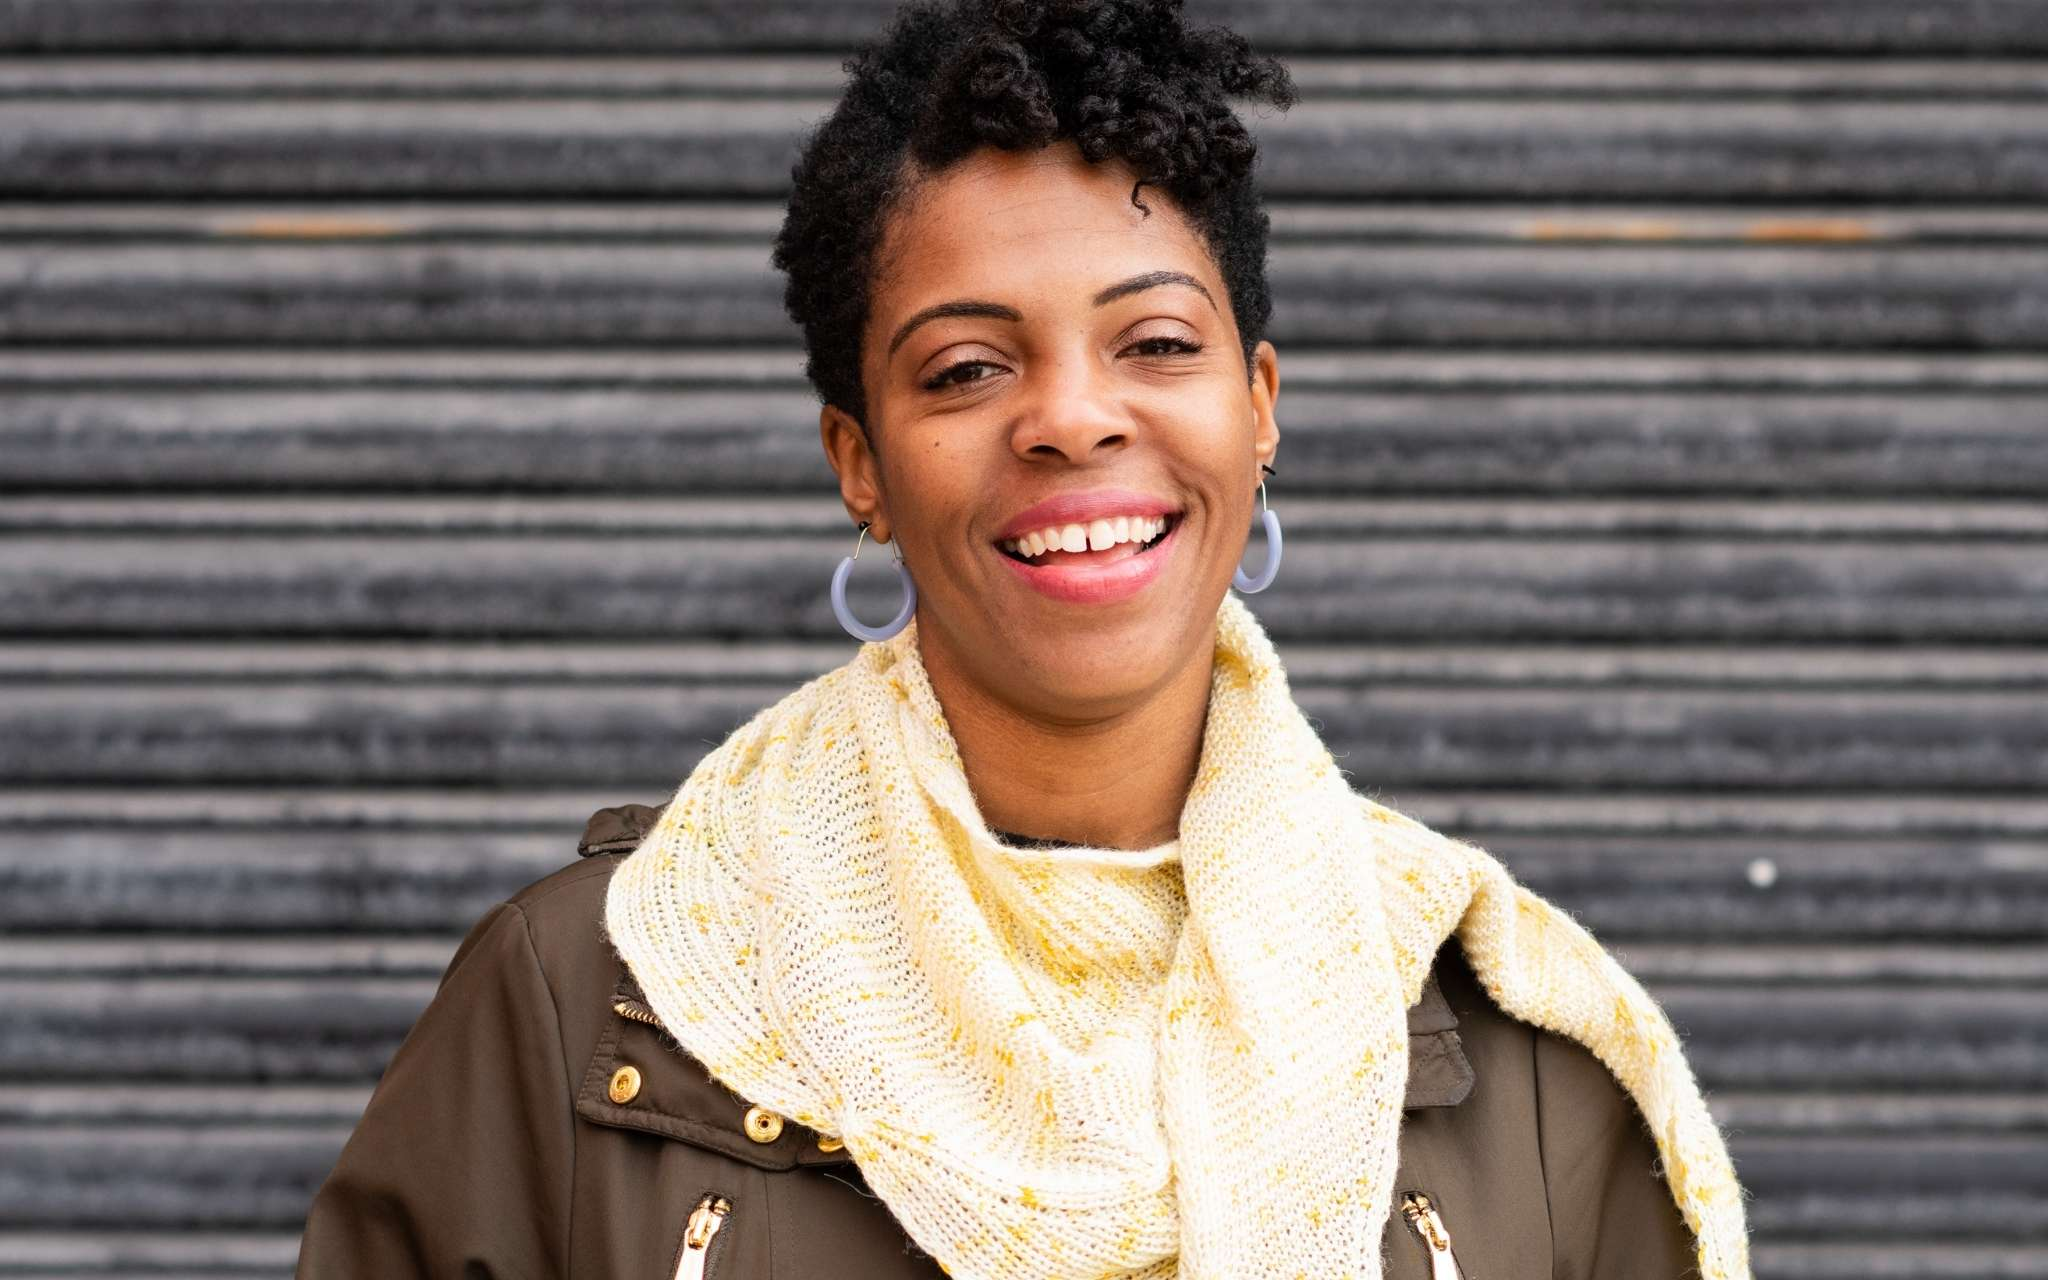 A young black woman with short hair and hoop earings stands in front of an iron door. She is wearing a pale lemon shawl with a brown jacket and is smiling.